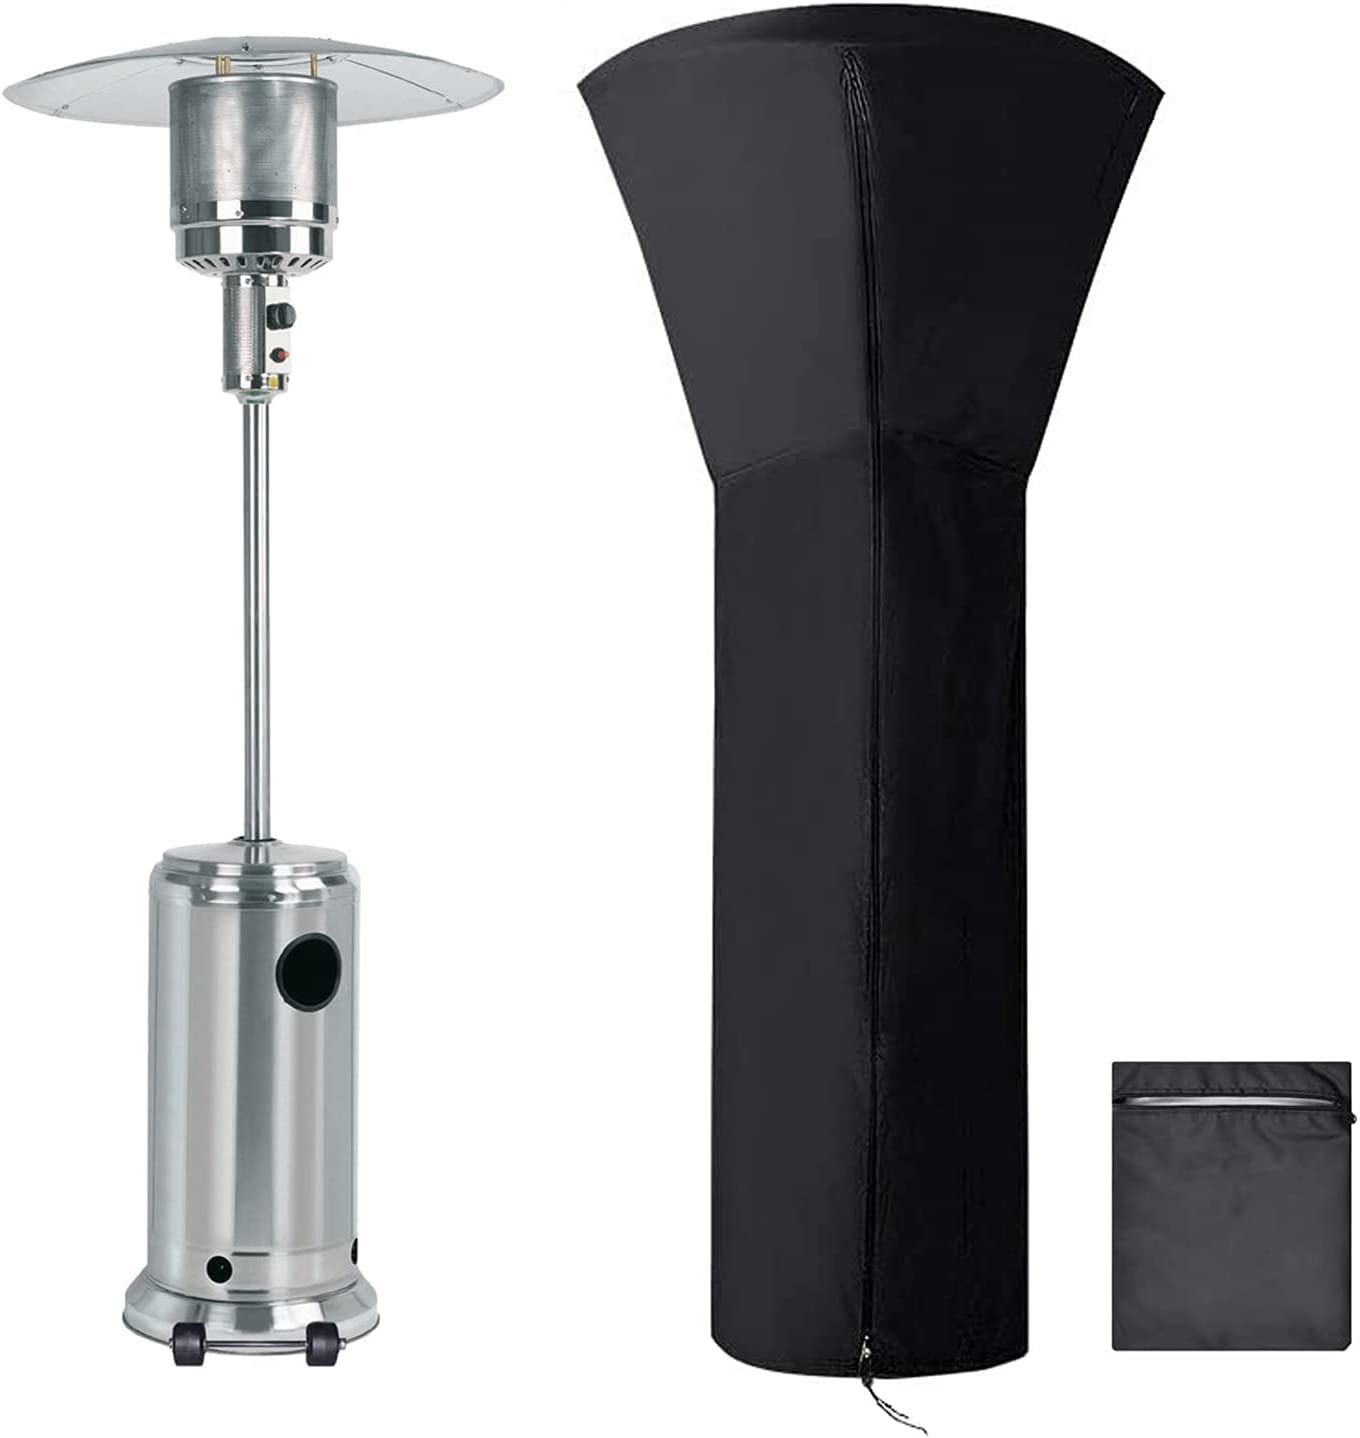 PAWFULL Patio Heater Cover of 420D Black Large discharge sale Thicker w Oxford Fabric Max 44% OFF